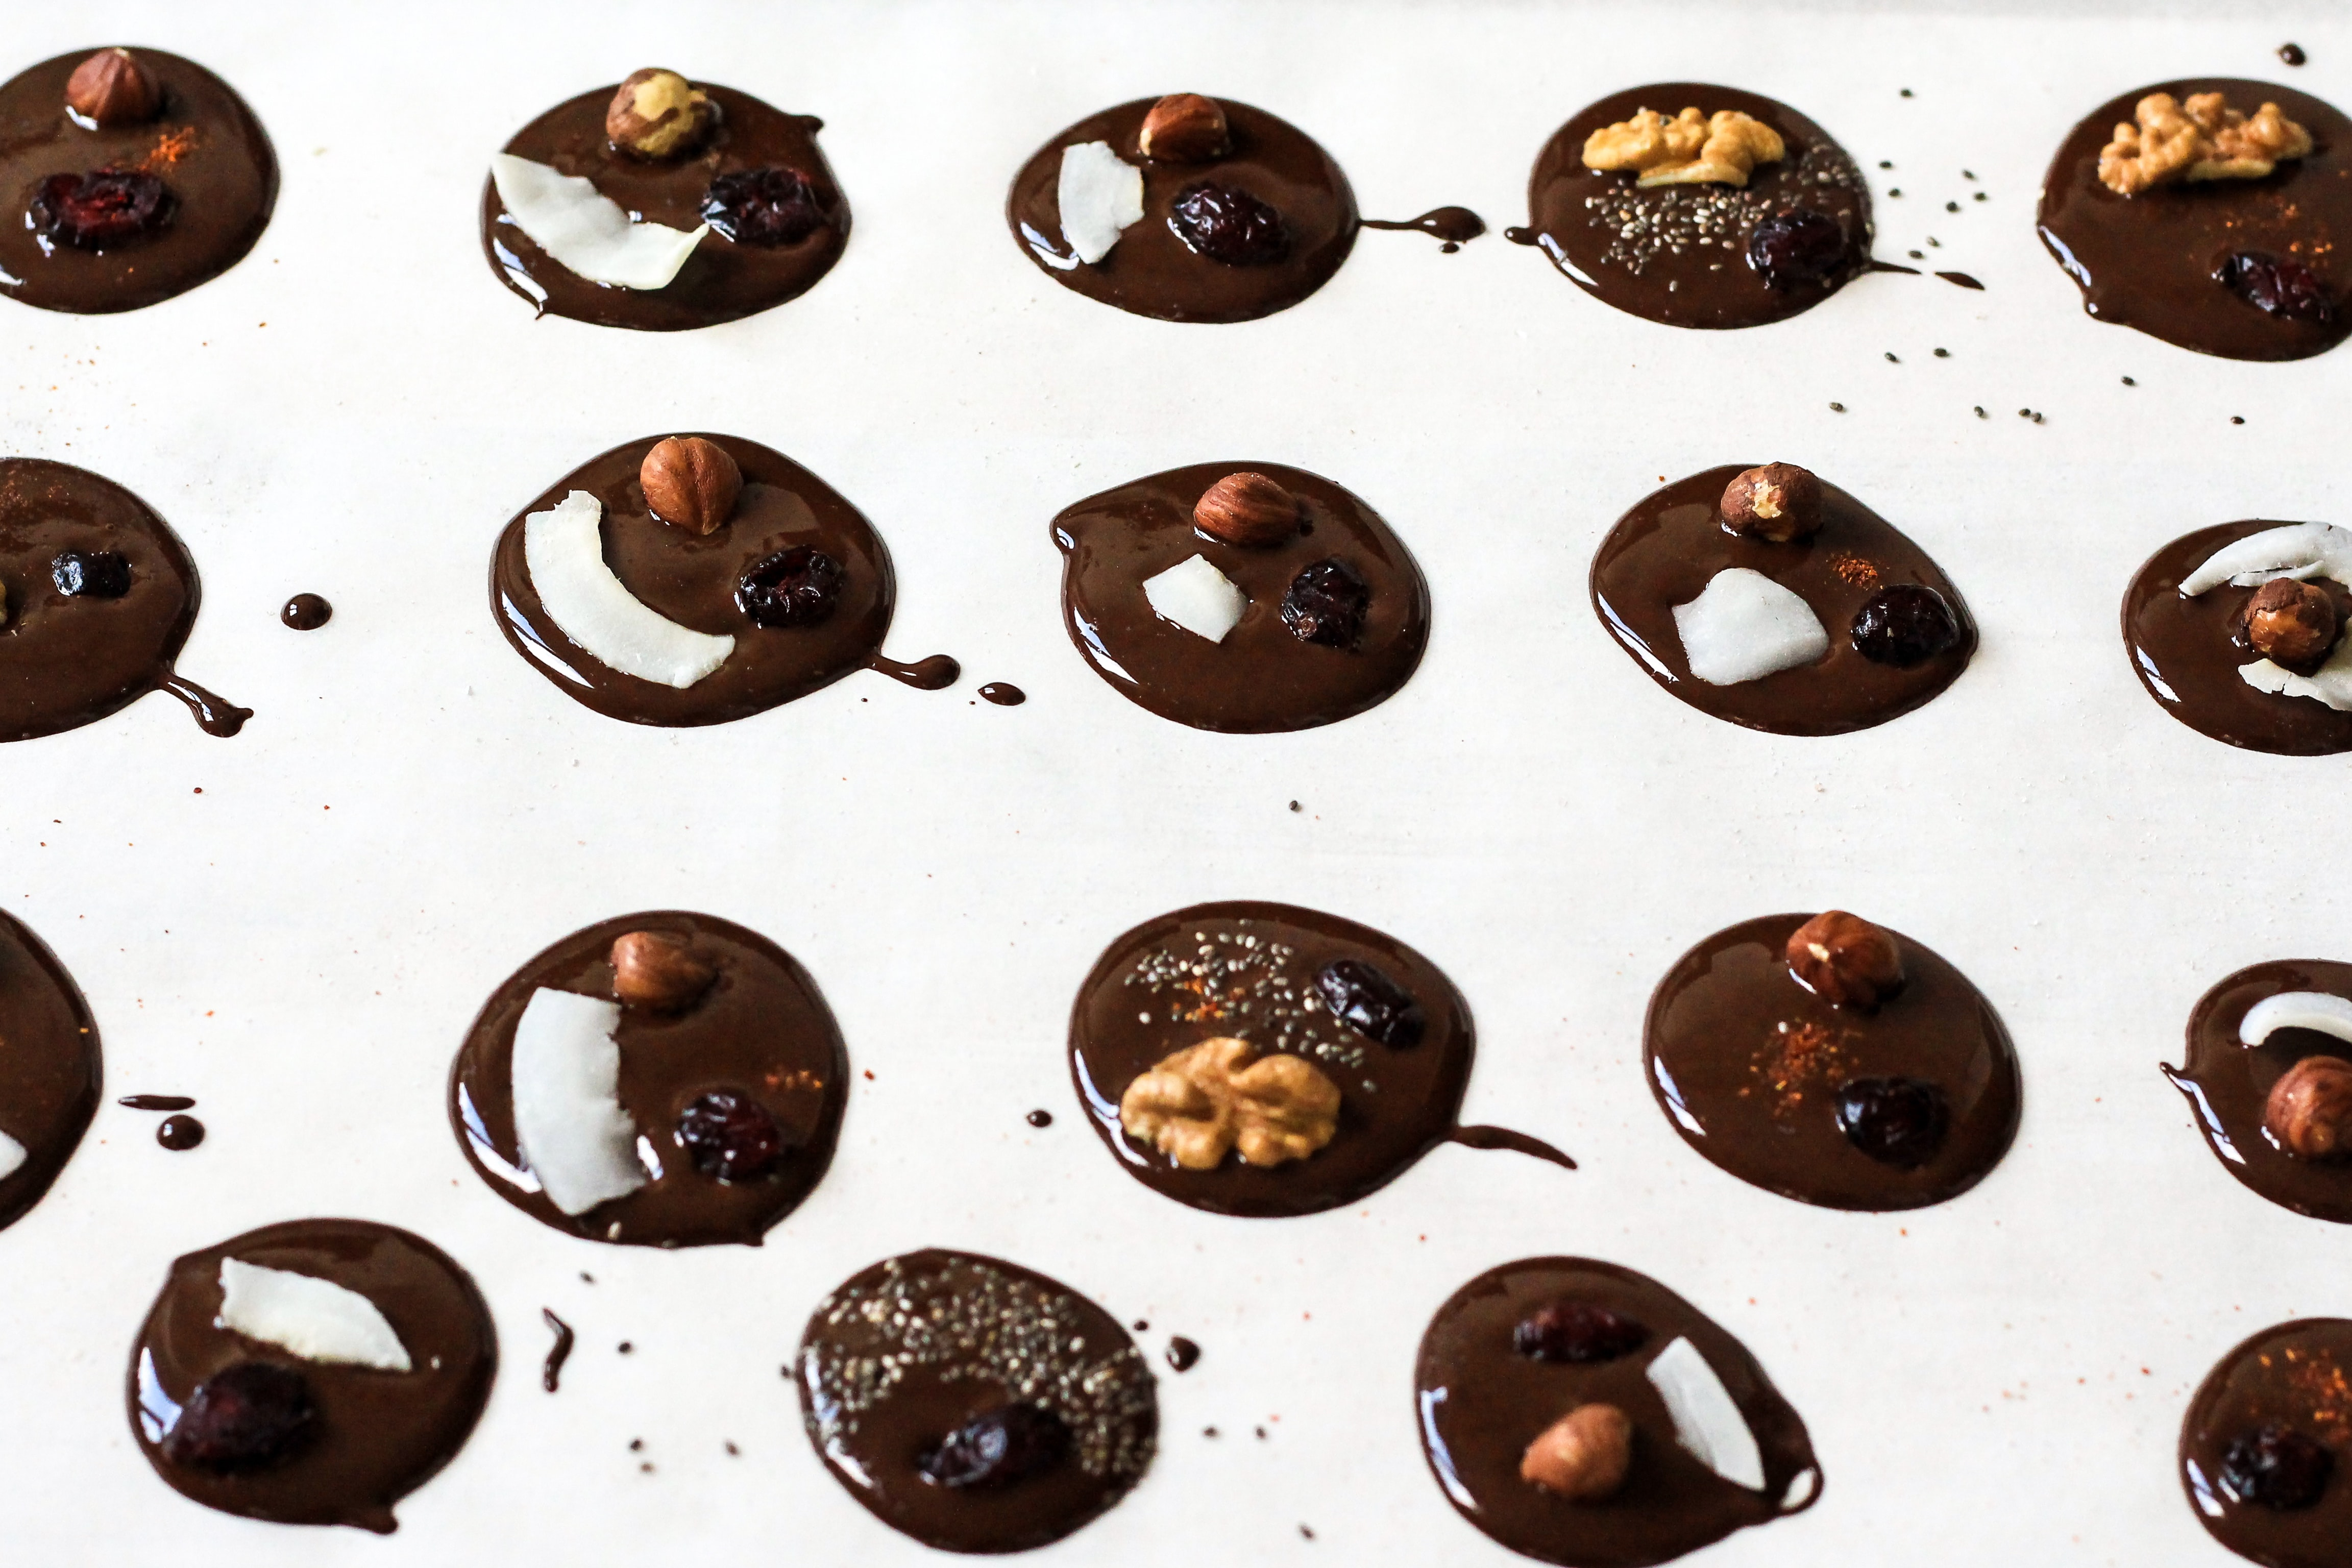 chocolate on white surface